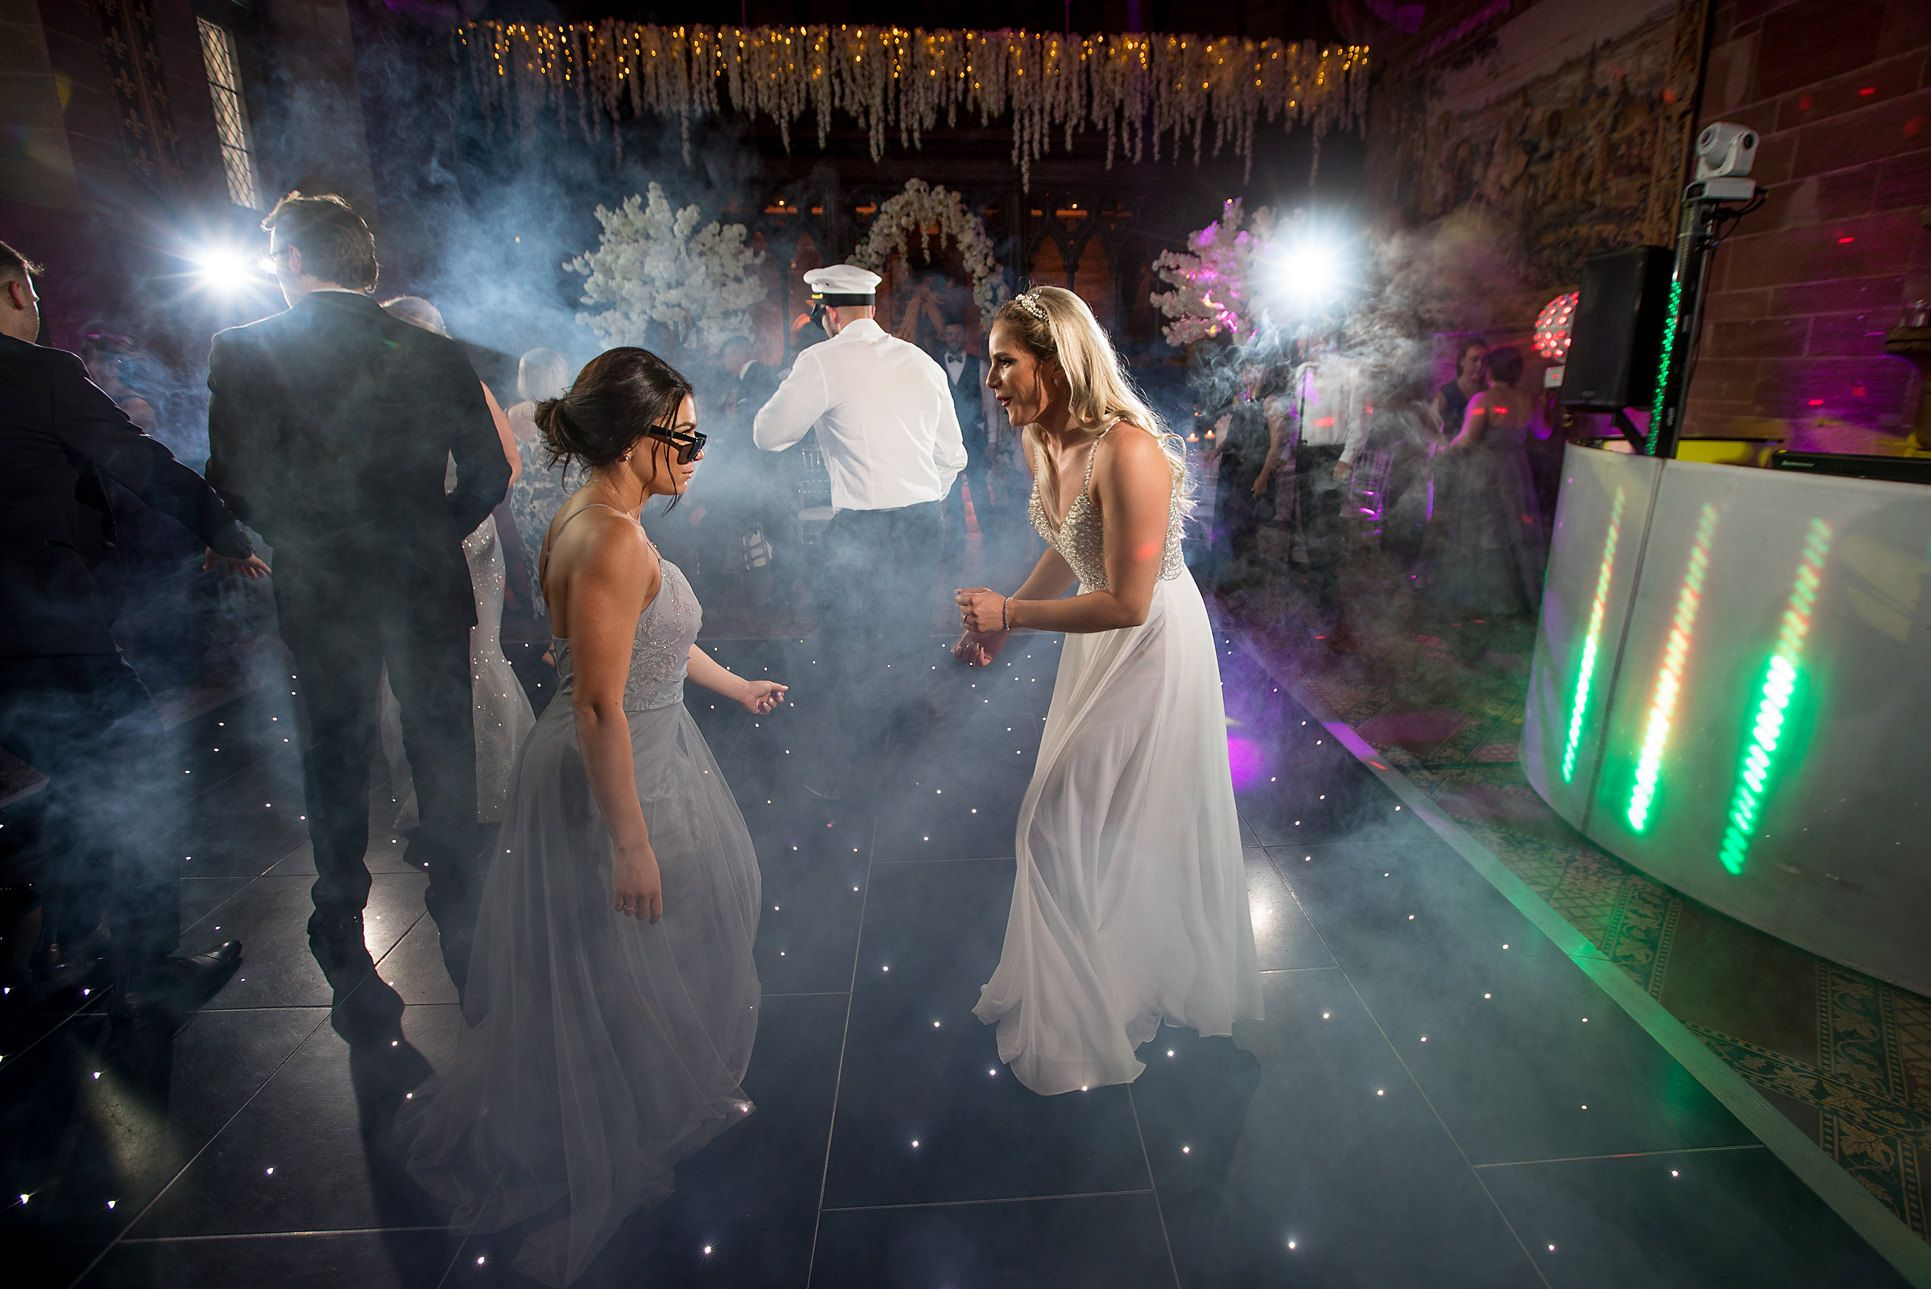 Peckforton castle wedding photography at evening party time with bride and bridesmaid dancing